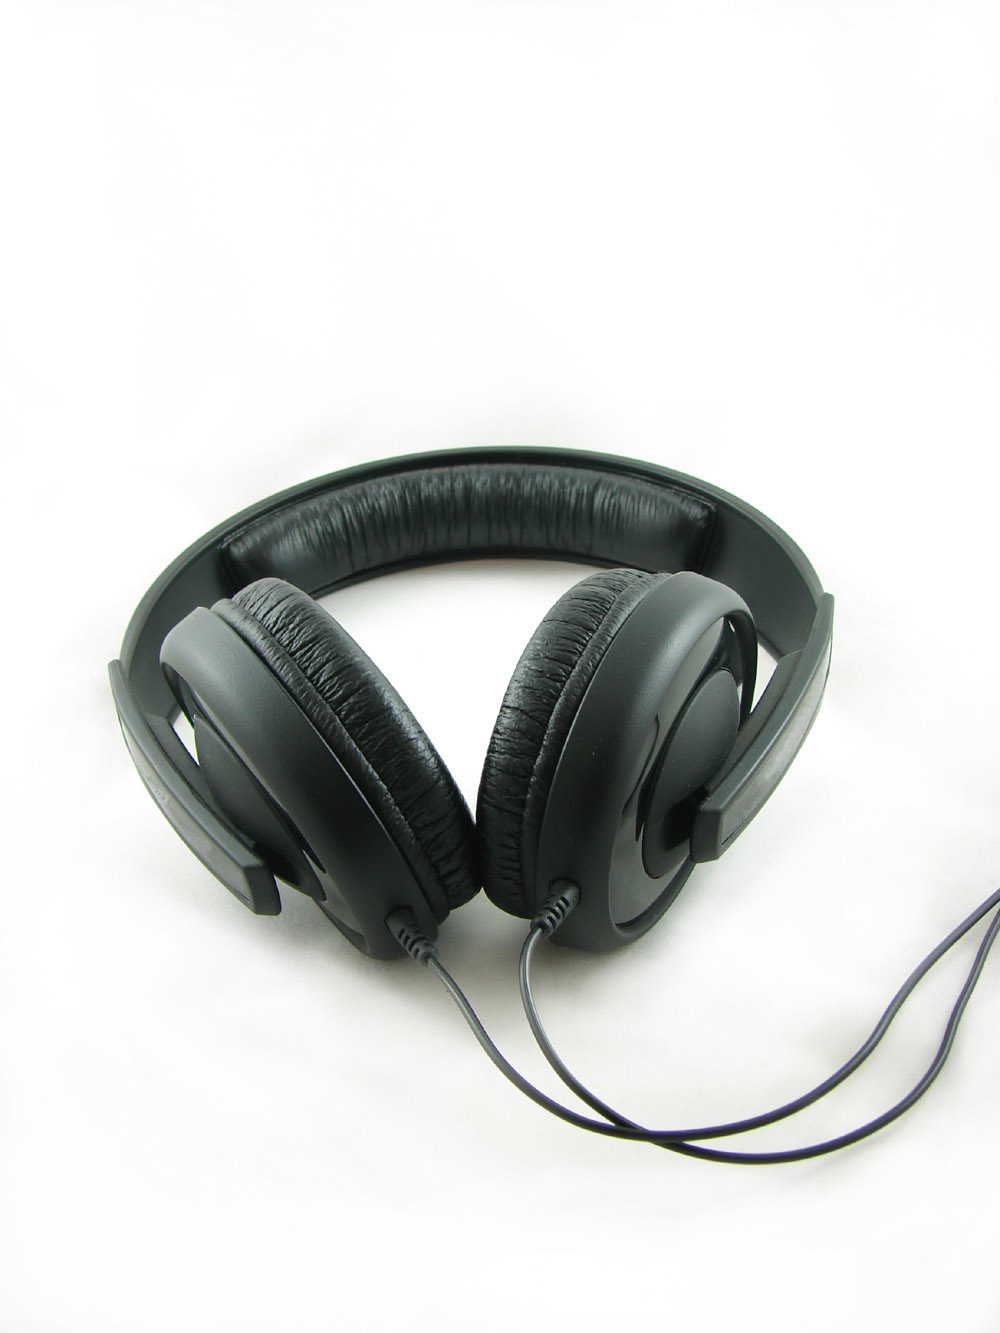 High-definition headphones picture 22572